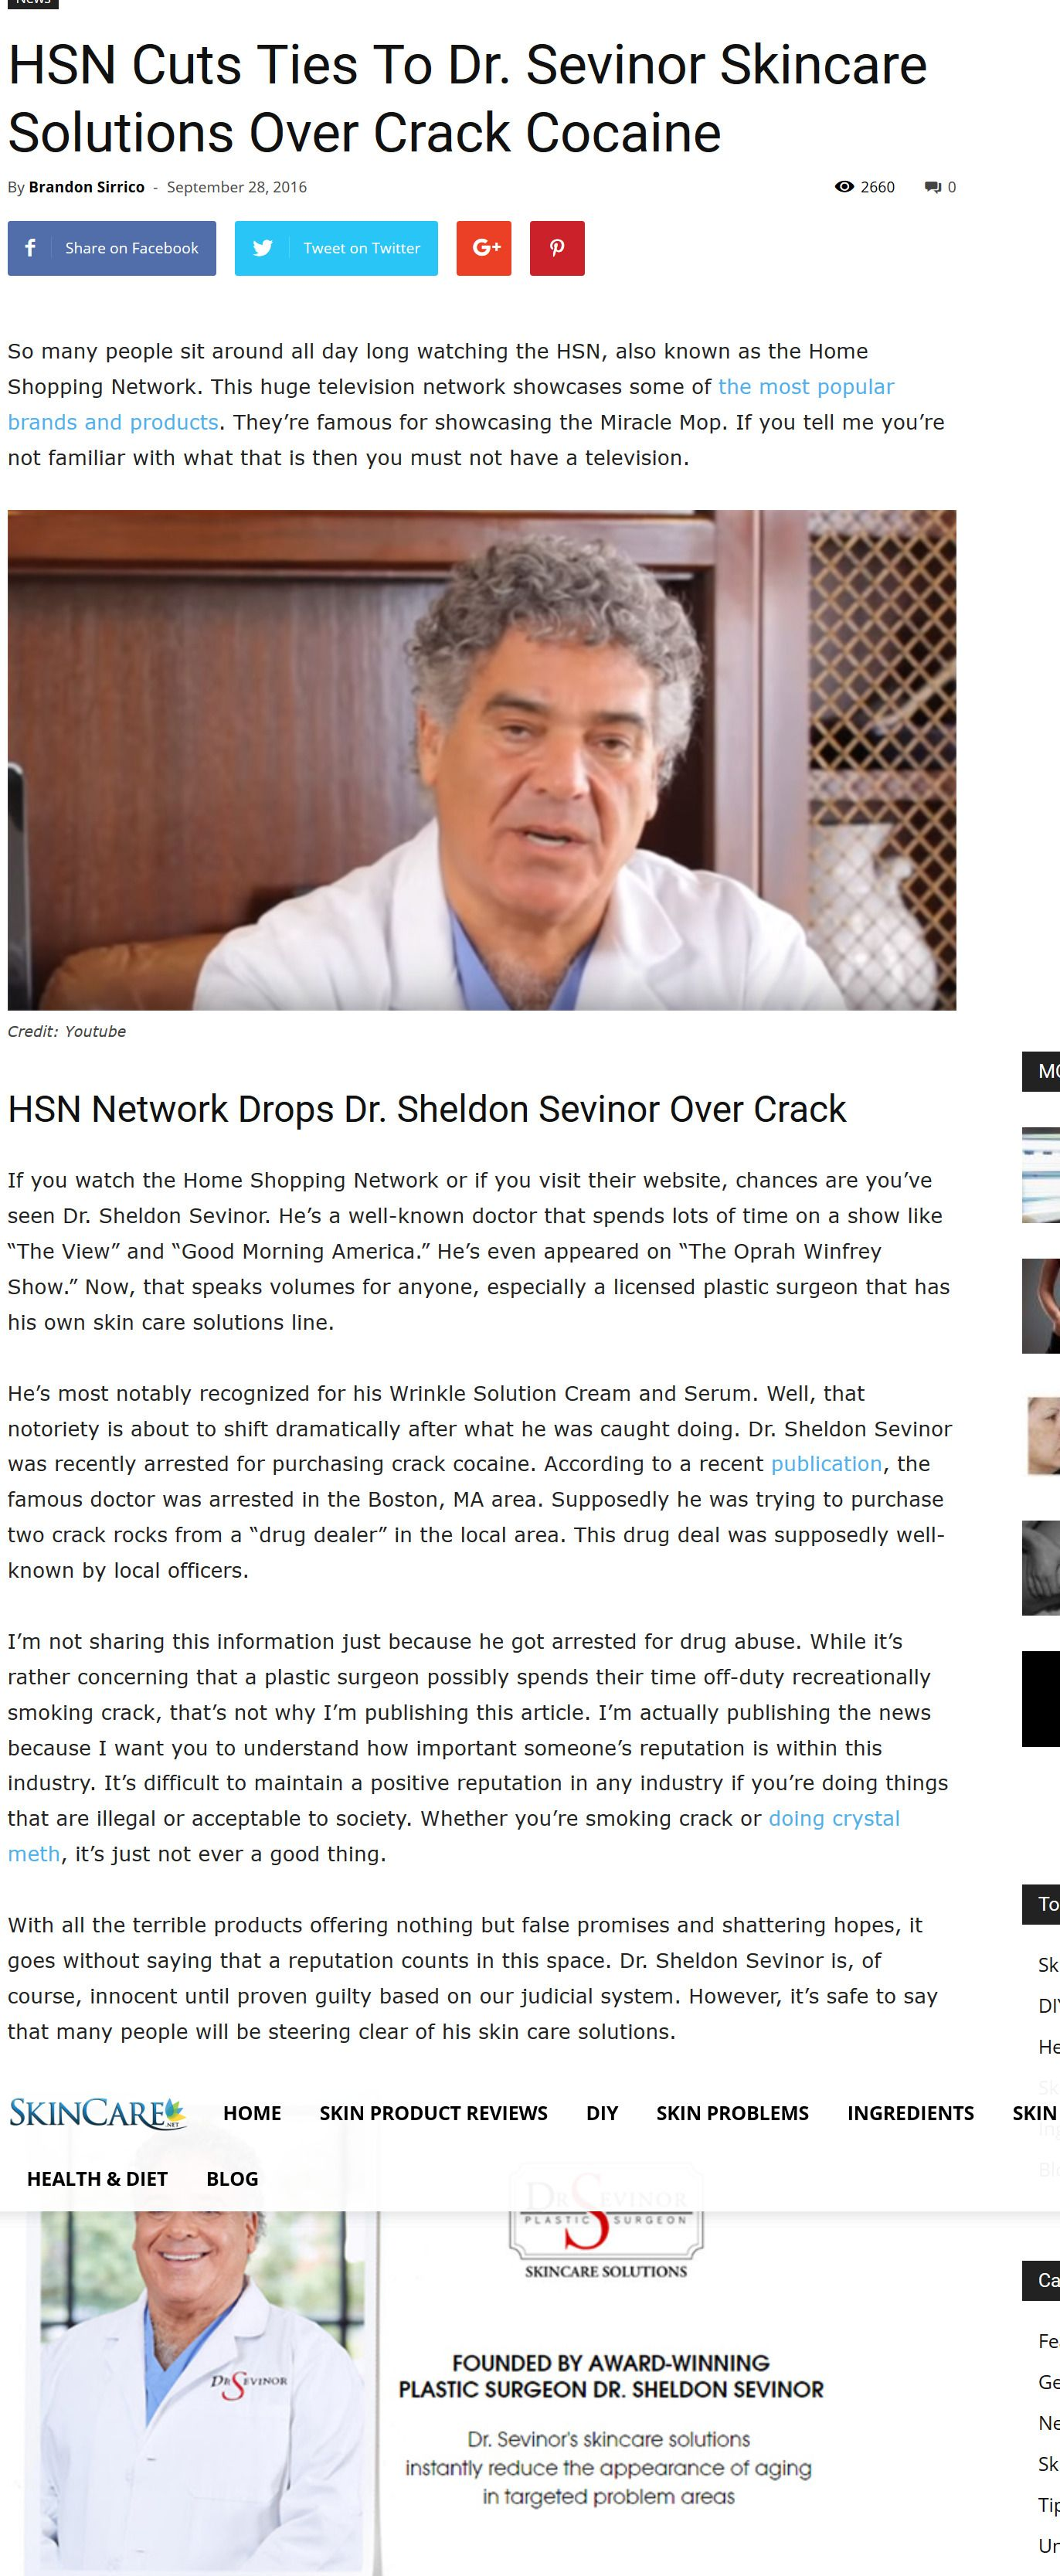 Screenshot_2019-05-05 Dr Sevino Fired by HSN com for Crack Cocaine Possession Skincare net.jpg